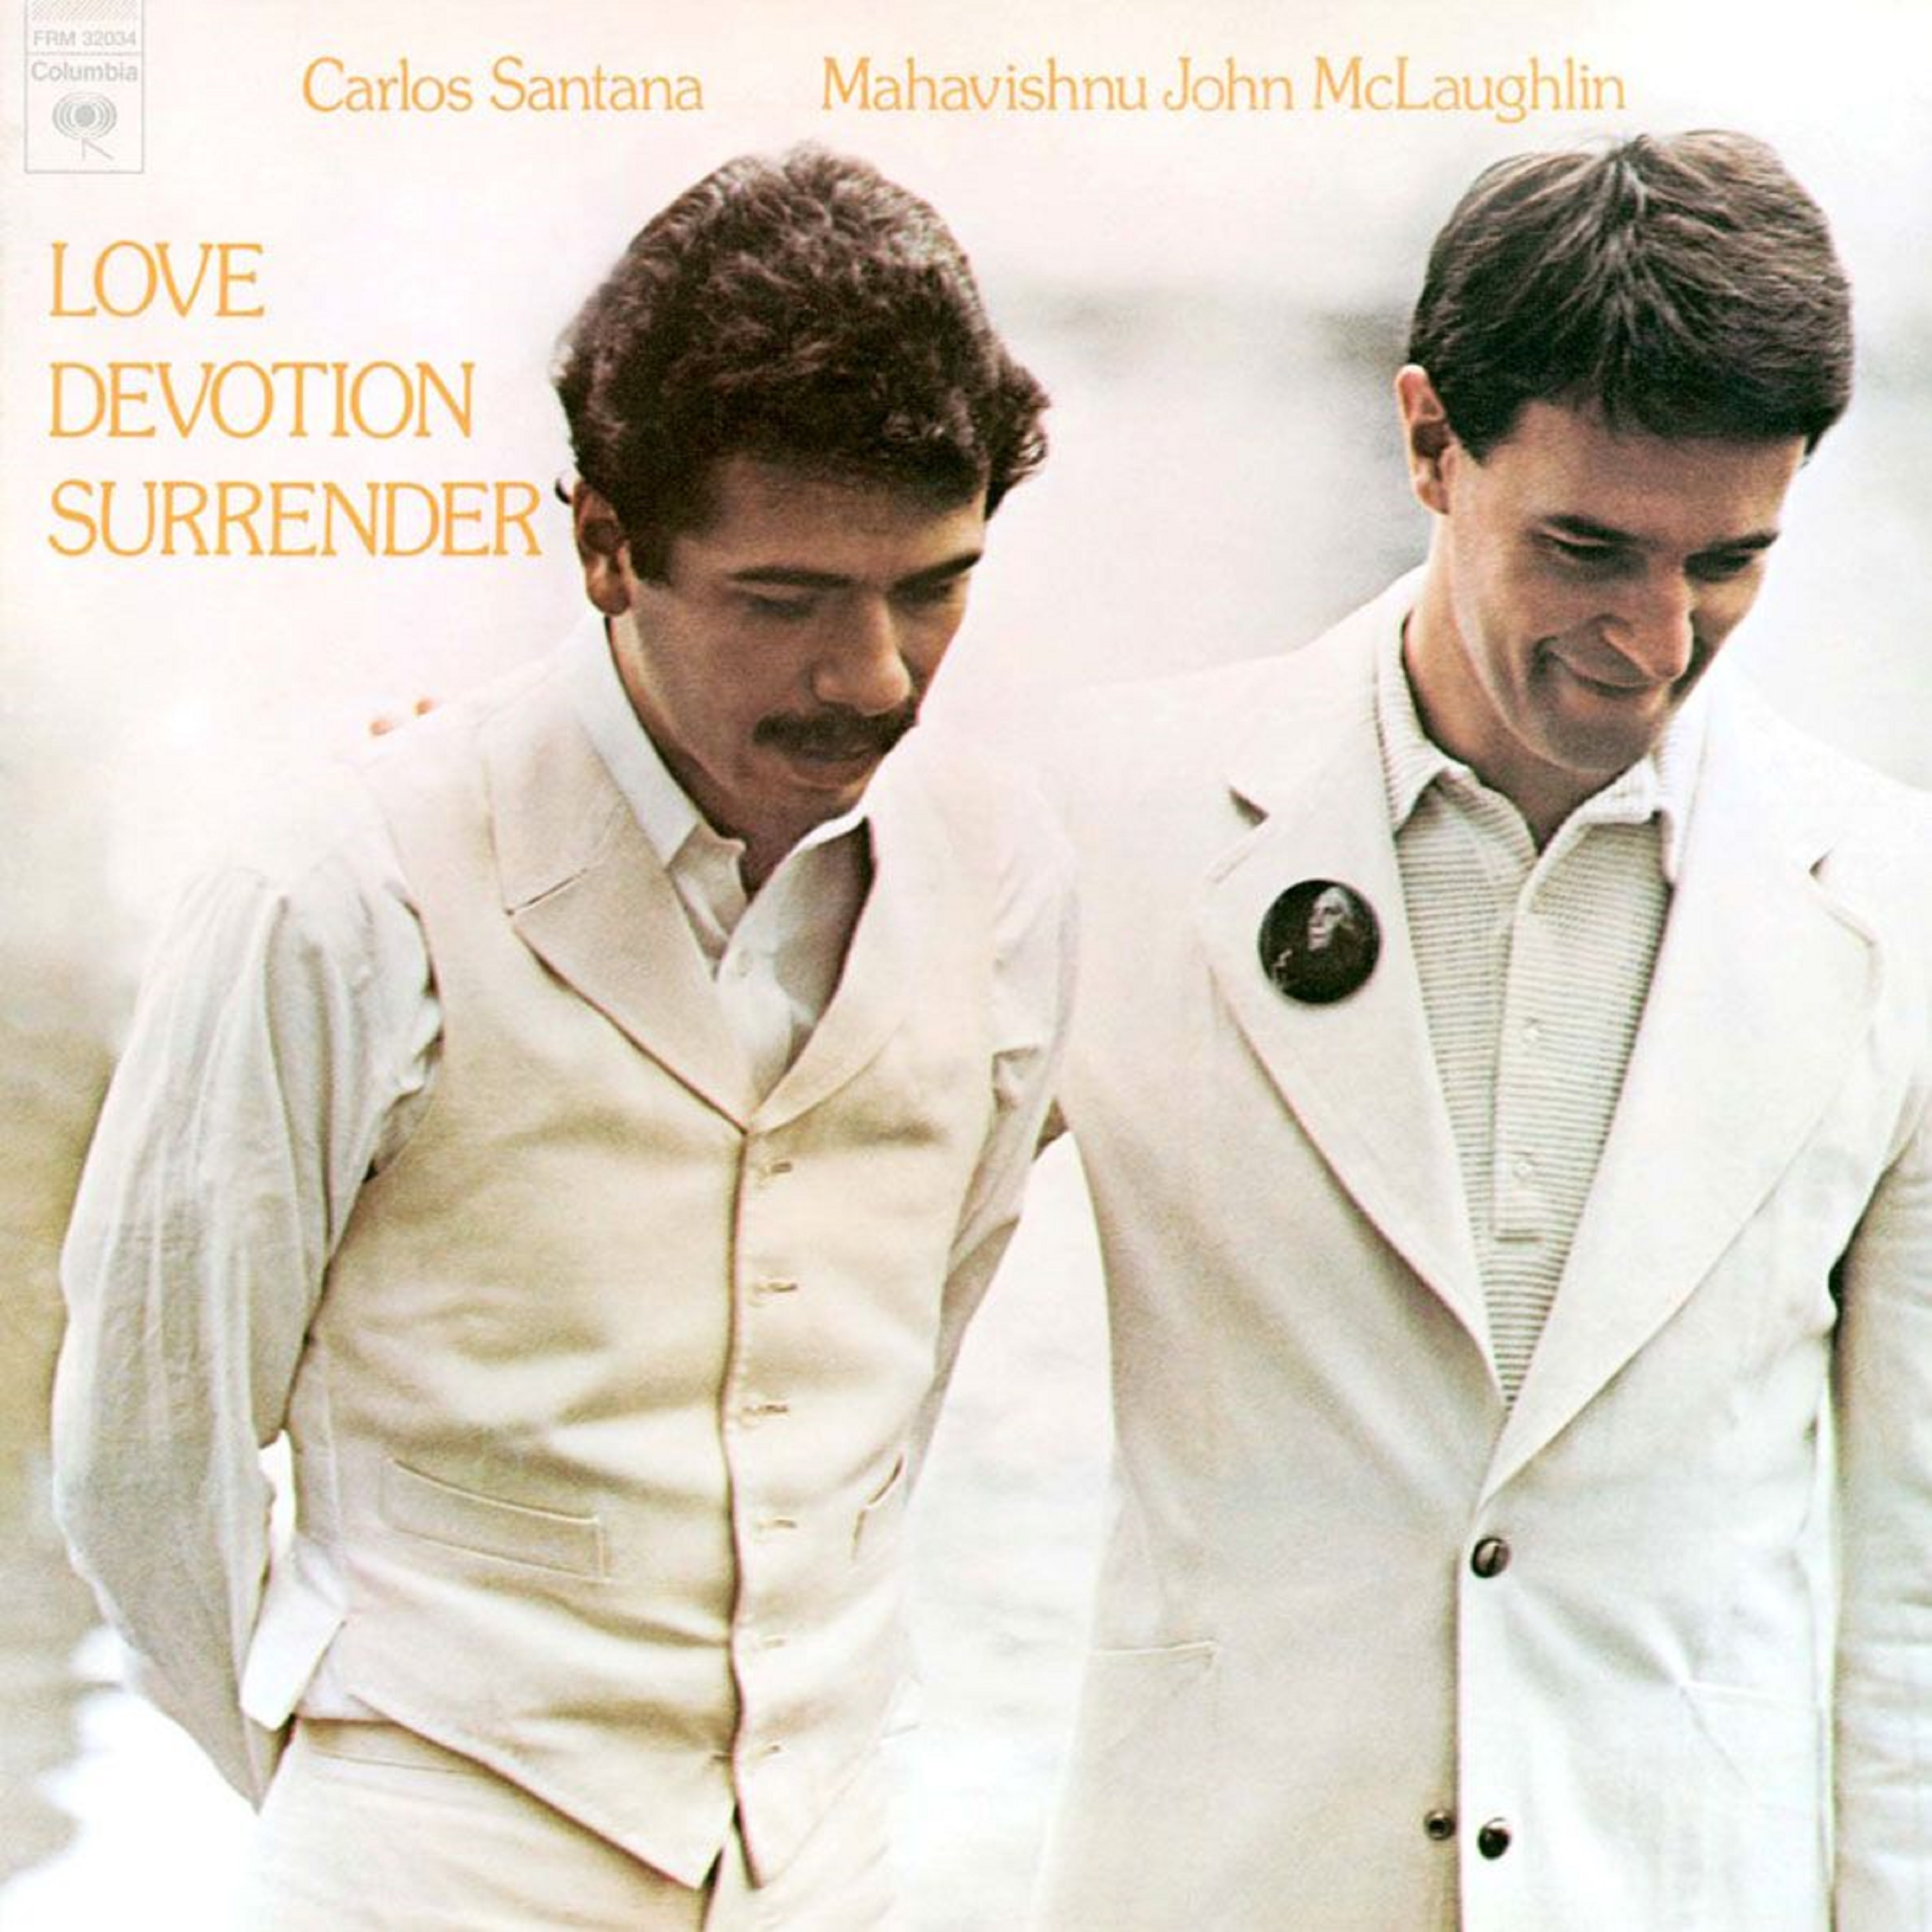 Carlos Santana & John McLaughlin - Love Devotion Surrender (180 Gram Translucent Gold & Red Swirl Audiophile Vinyl/Limited Anniversary Edition/Gatefold Cover)